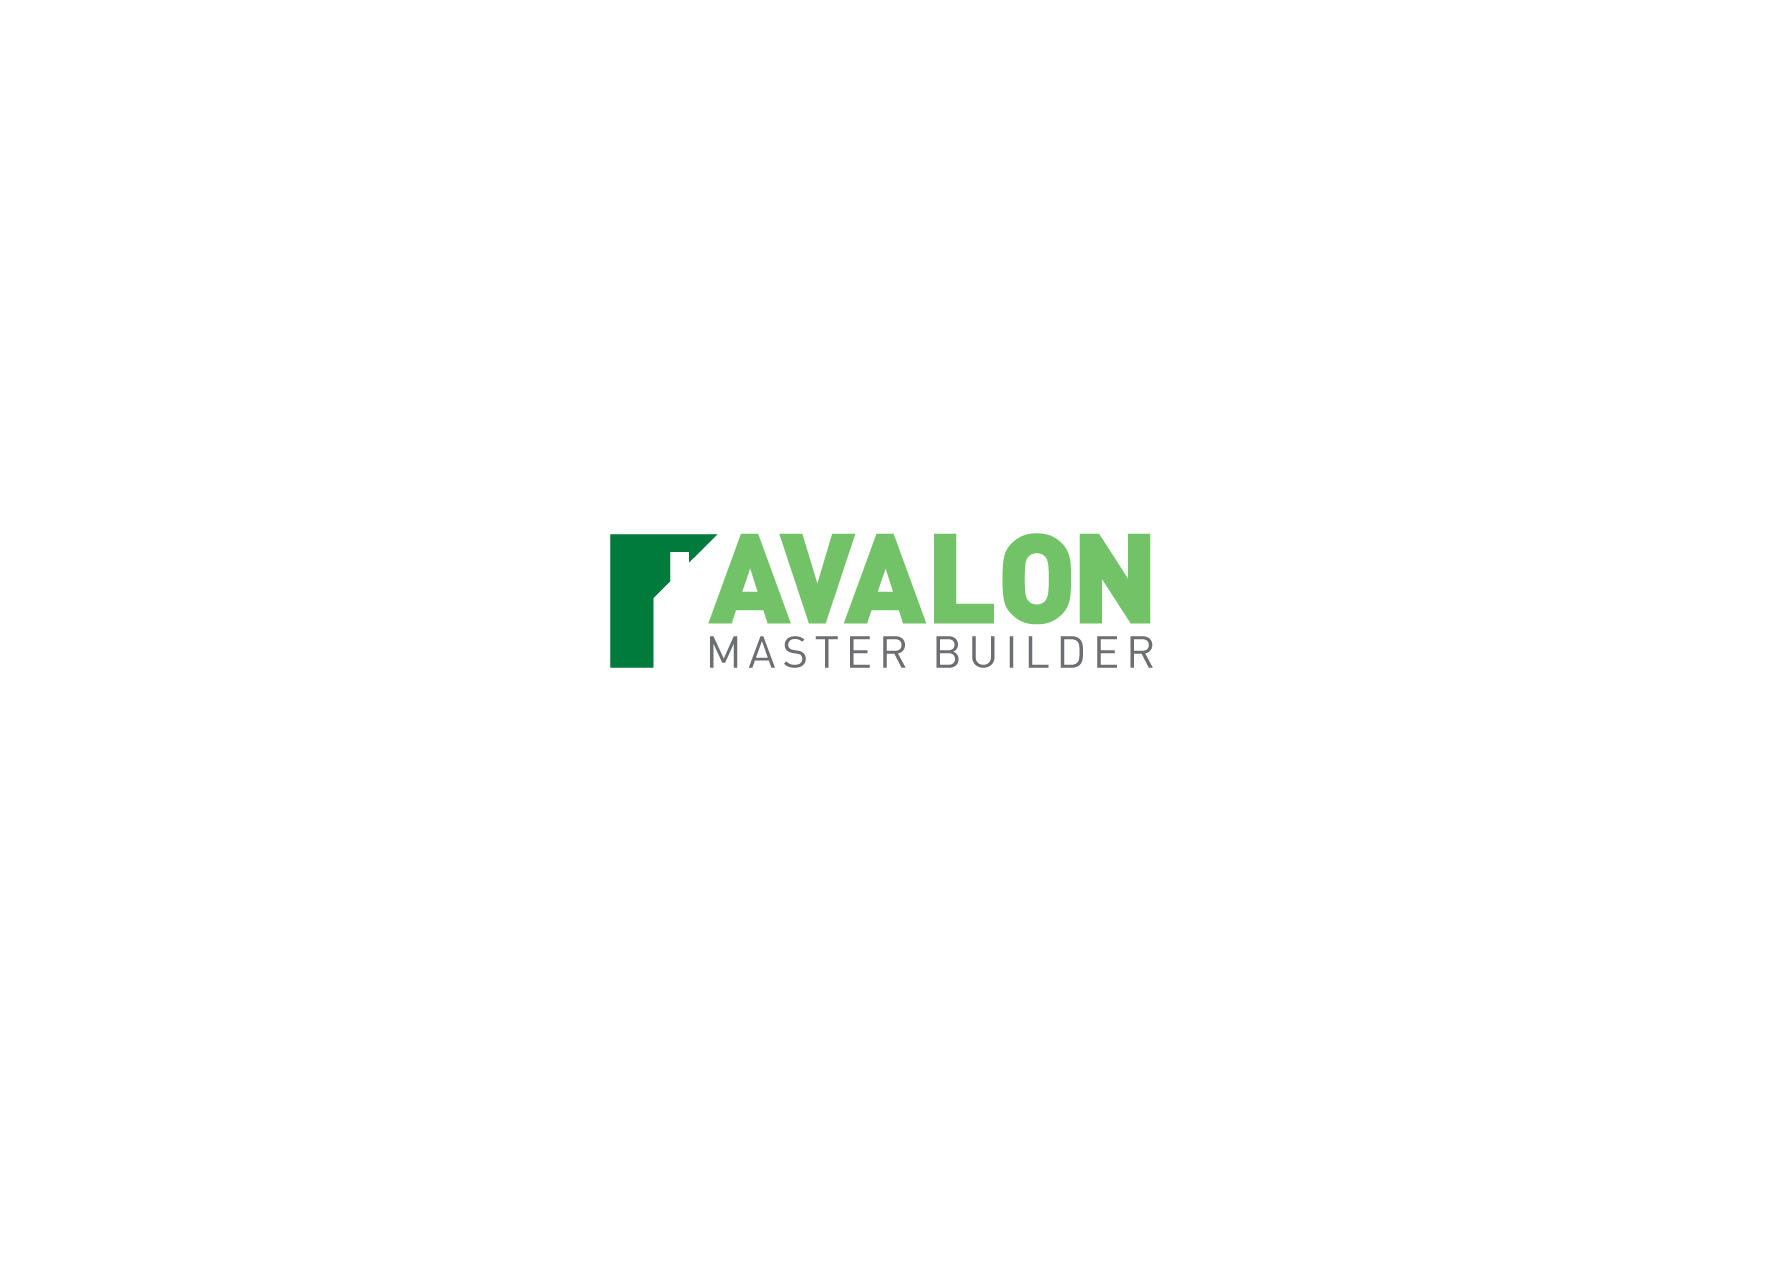 Logo Design by tanganpanas - Entry No. 45 in the Logo Design Contest Avalon Master Builder Logo Design.